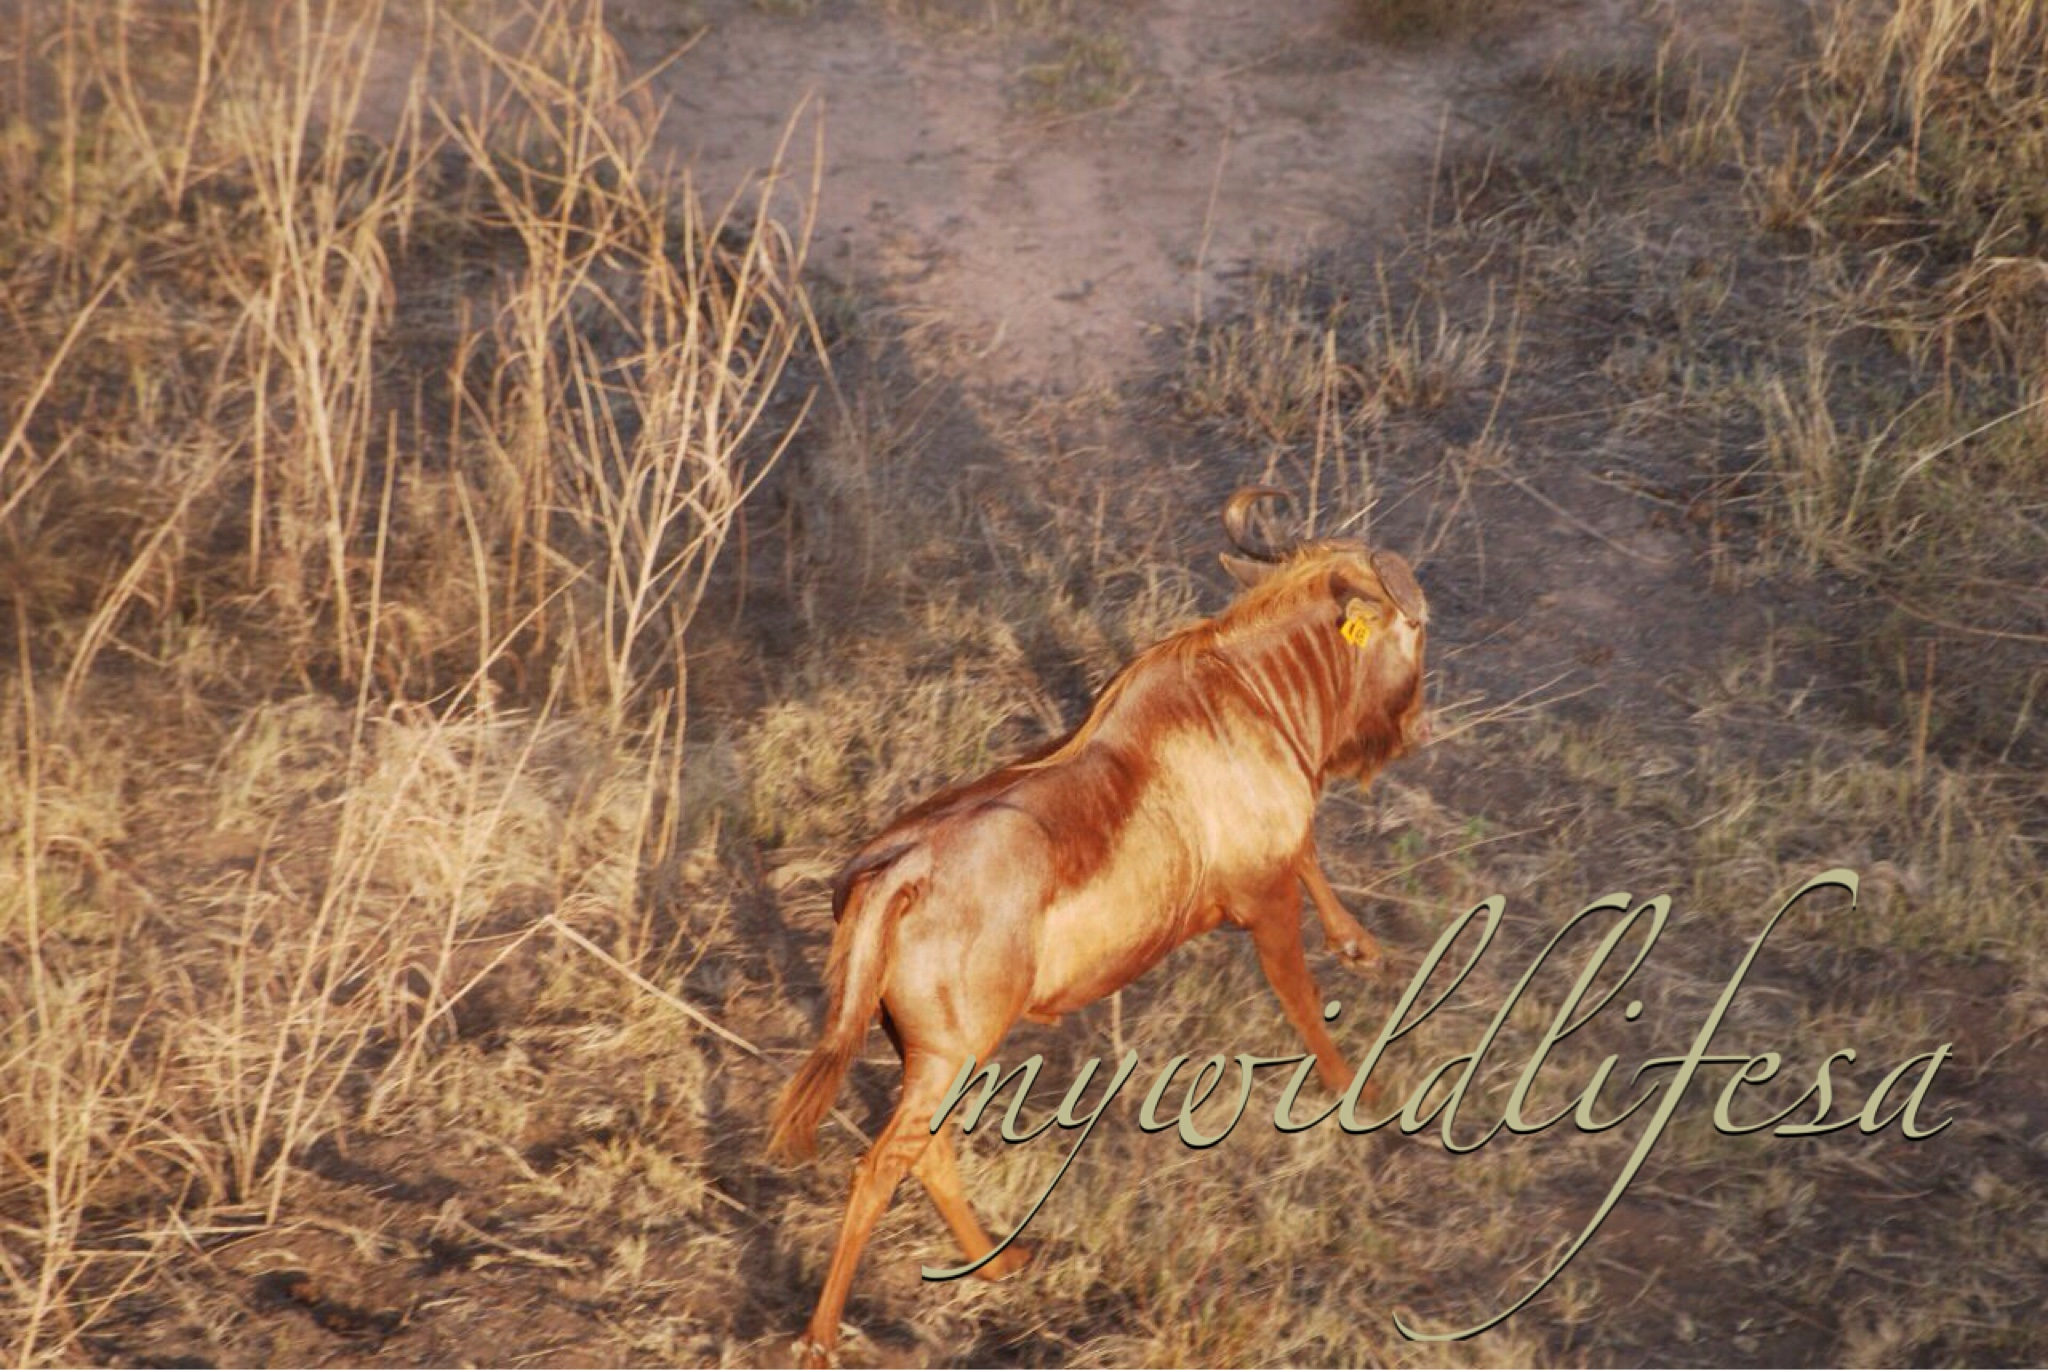 Golden King Wildebeest Heifers for sale in Limpopo, Thabazimbi